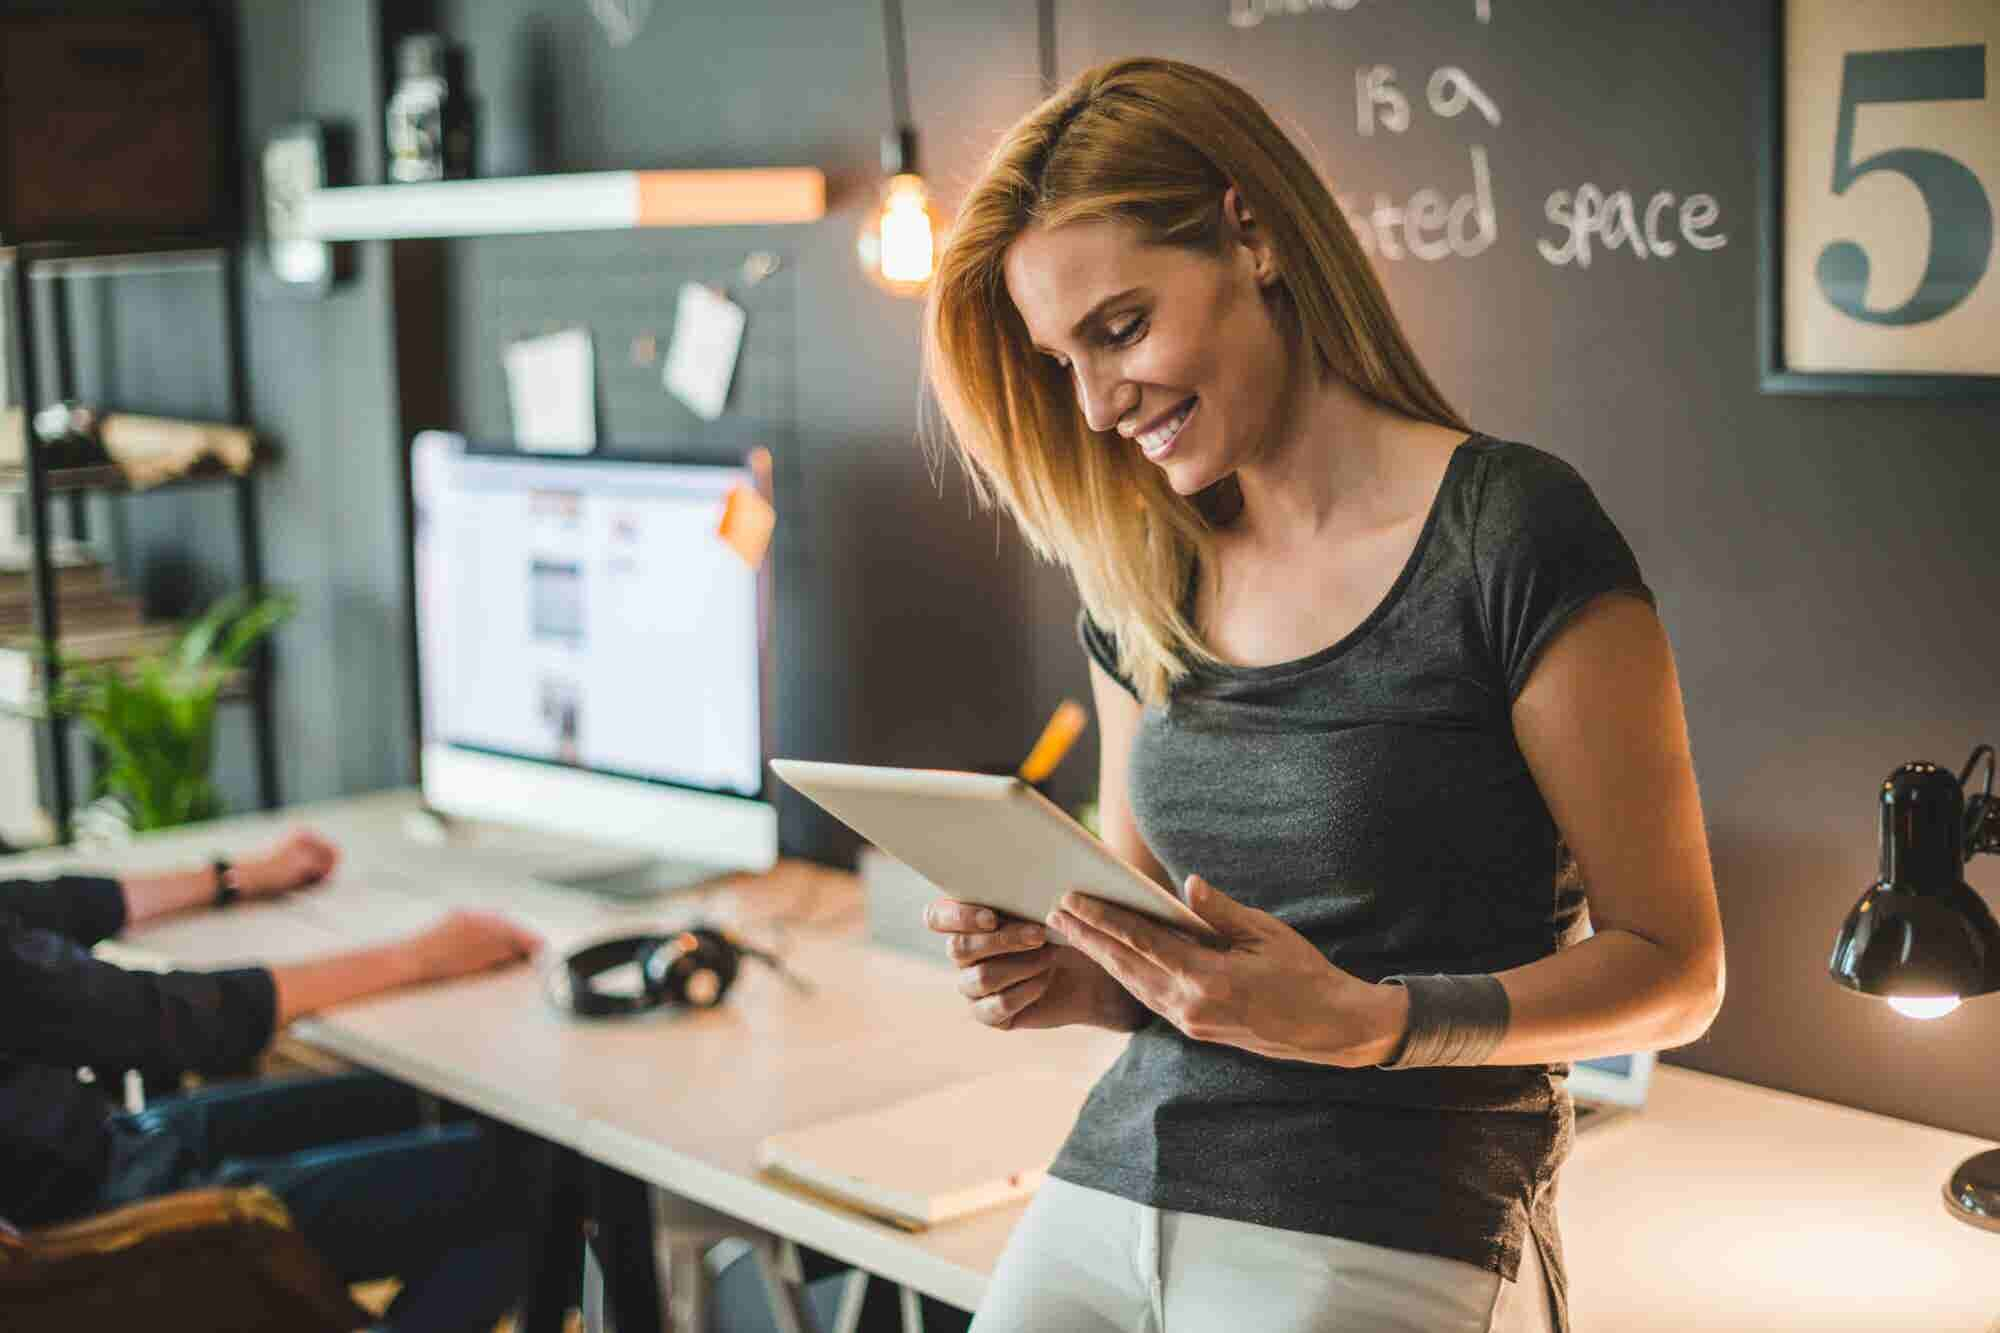 Women: Here's How to Overcome Your Fear of Your Personal Brand